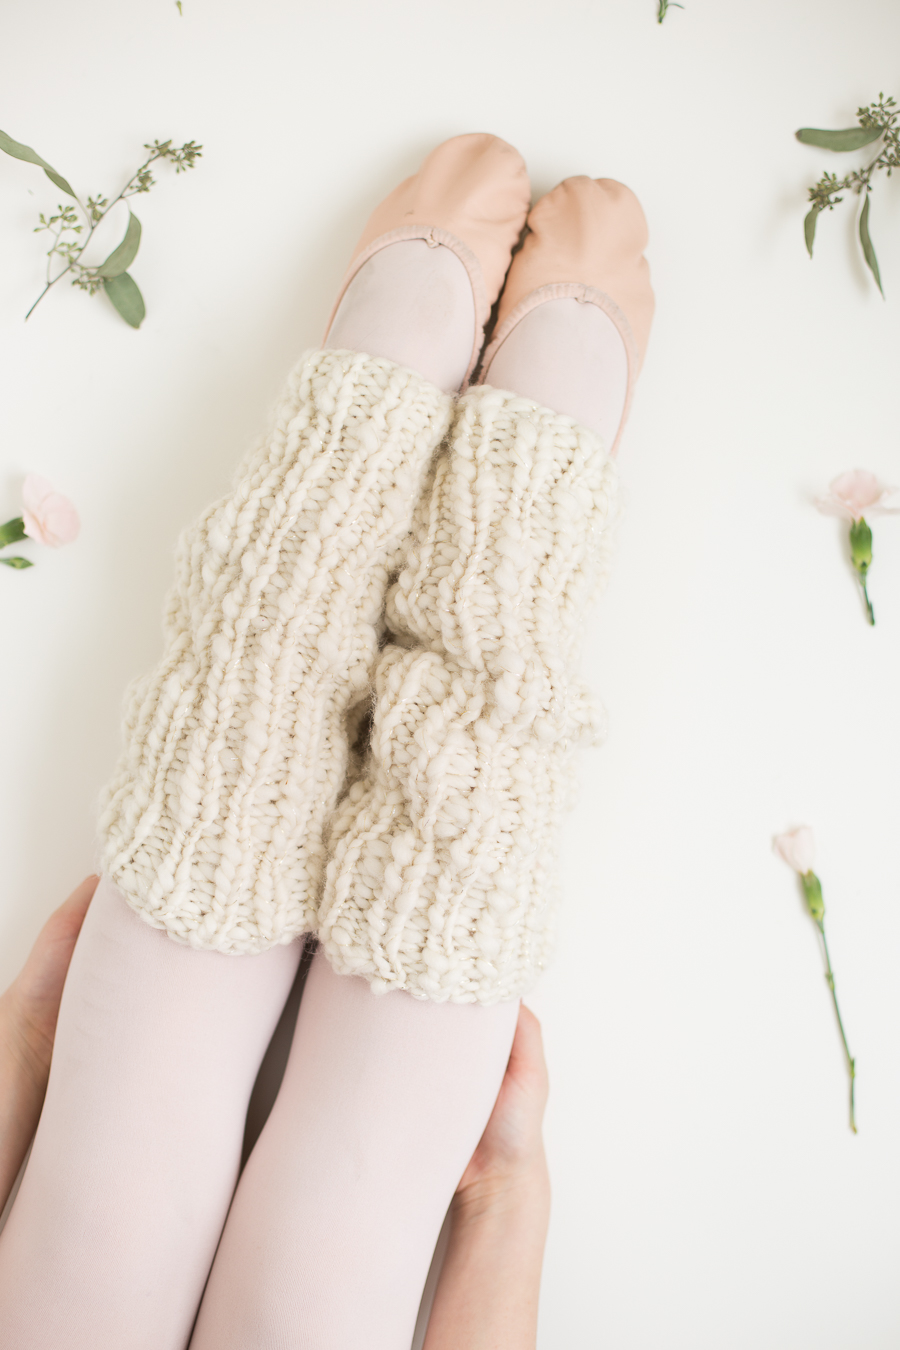 One Skein Knit Leg Warmers Pattern for Beginners - Flax & Twine